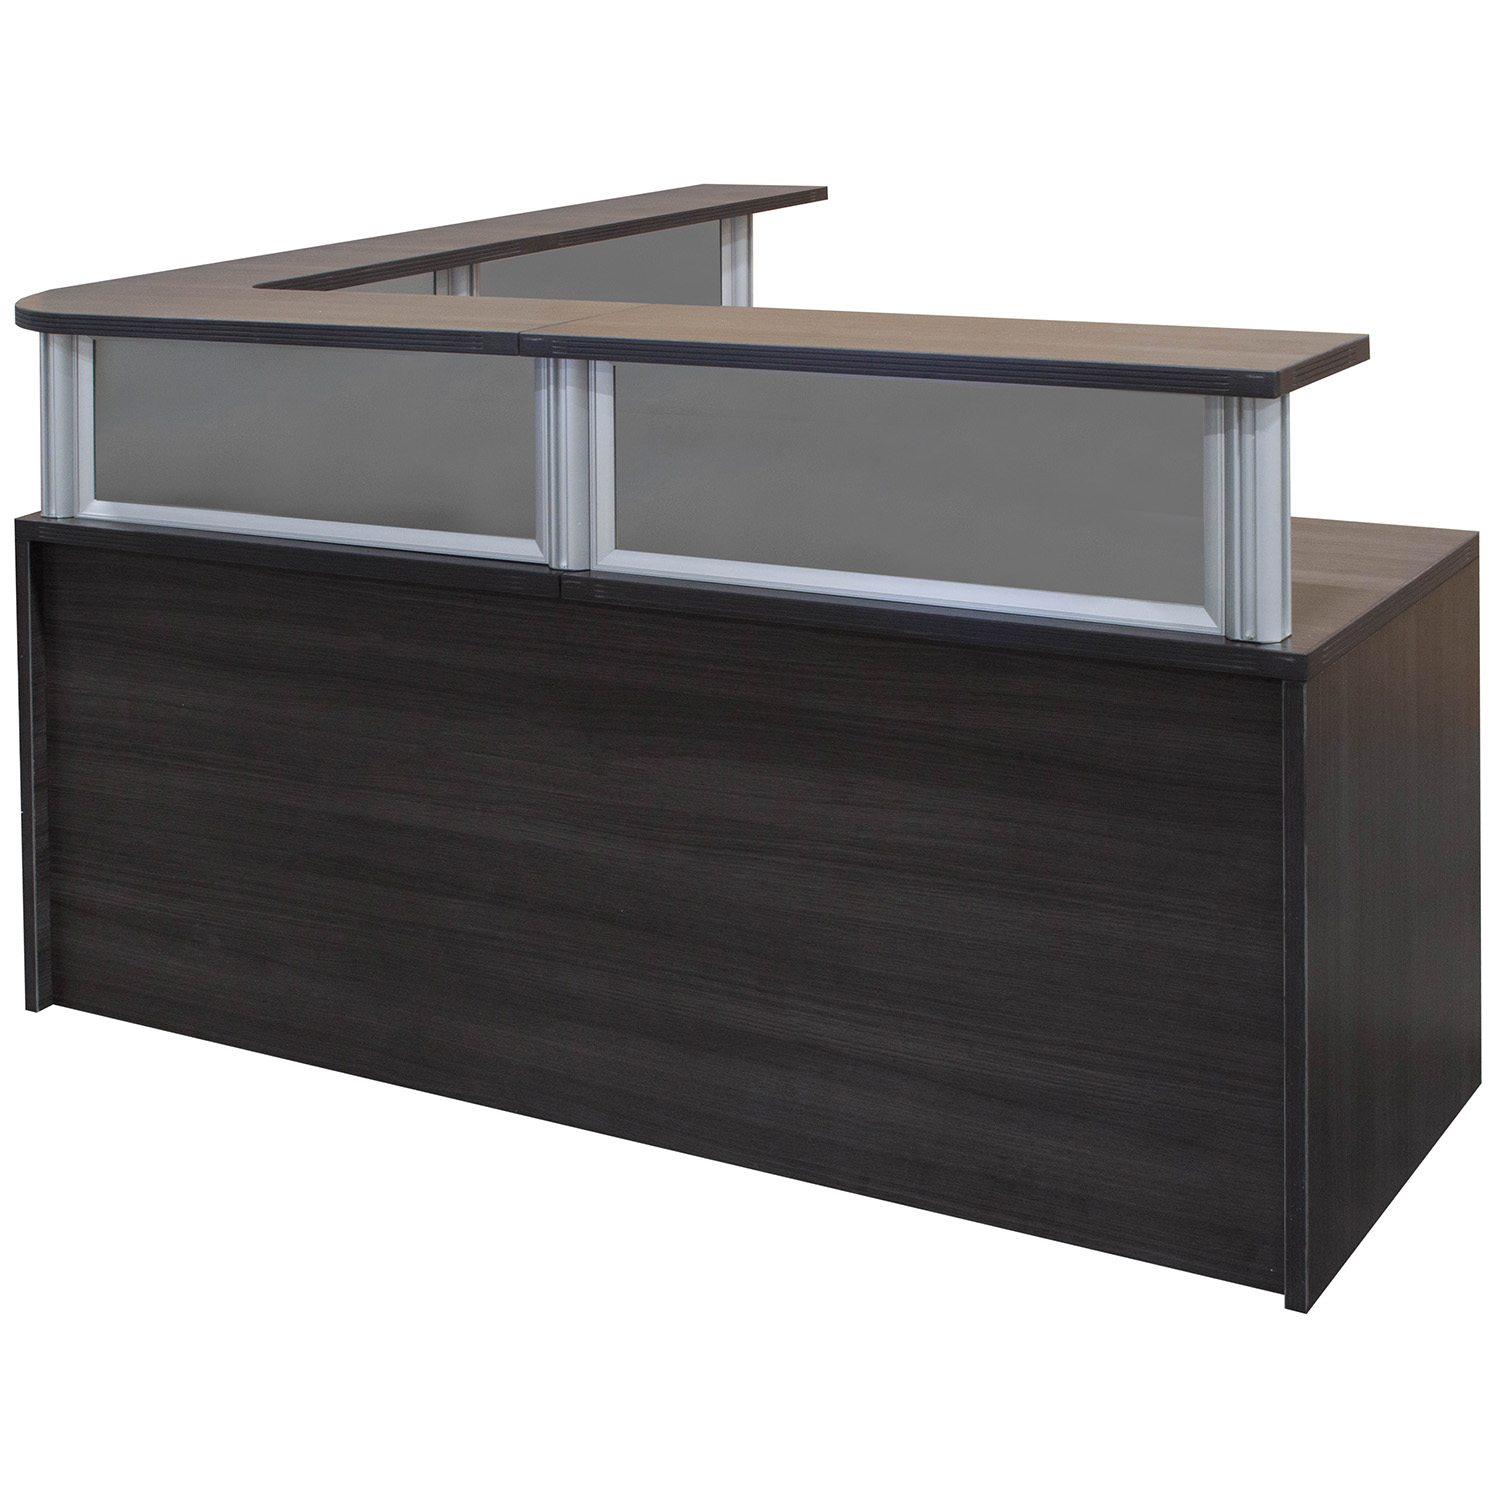 0901 New 72 inch L Shape Reception Desk with Glass and Top